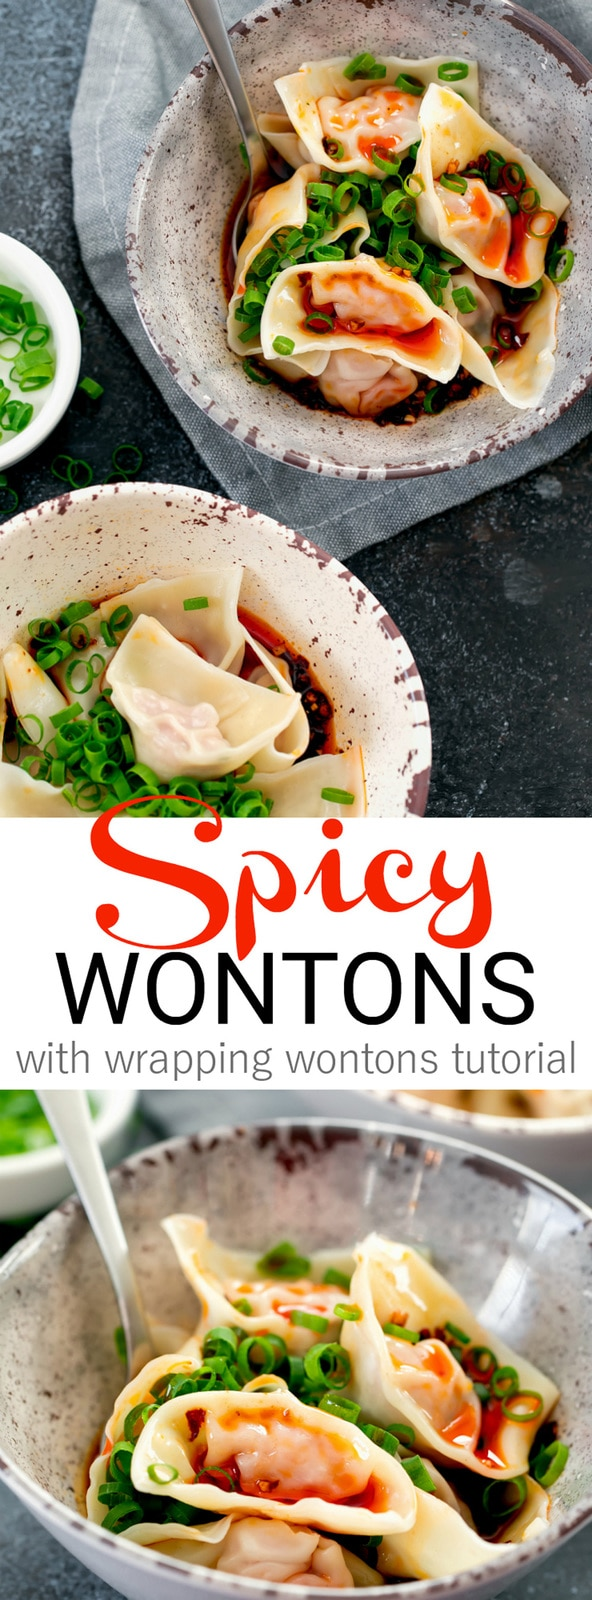 Sichuan Spicy Wontons. Wontons are coated in a spicy, sweet, garlicky chili sauce. It's a hearty and popular Chinese dish perfect for winter.